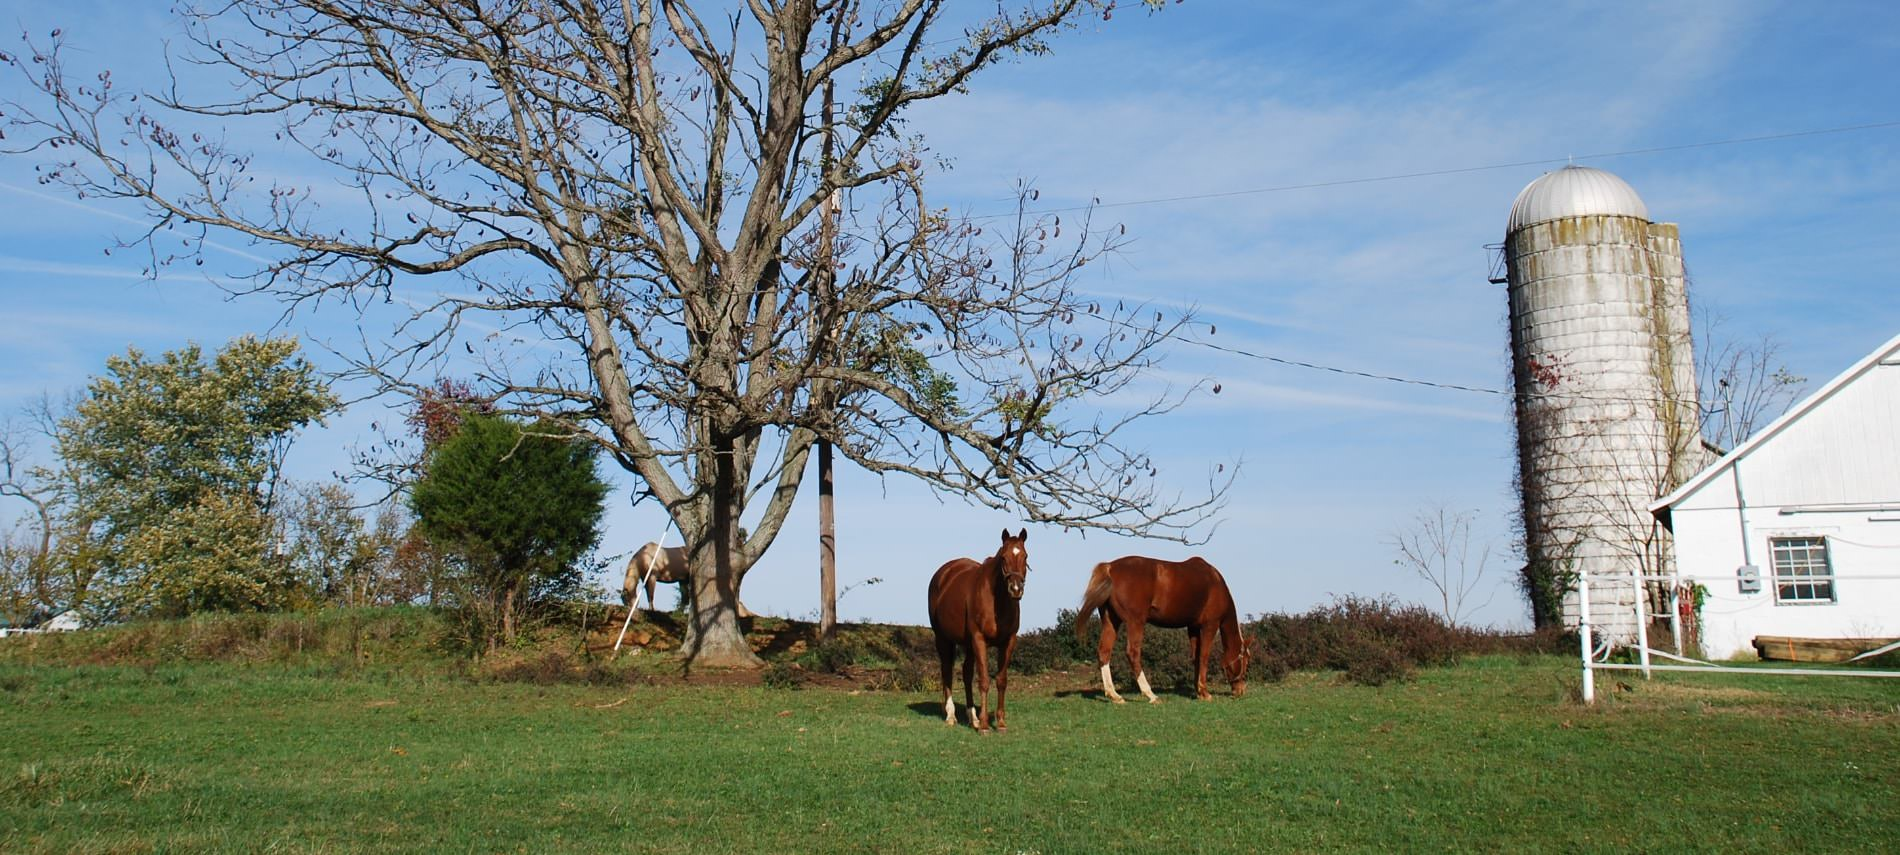 Two brown horses and one white horse grazing on green grass hear large tree and old silo